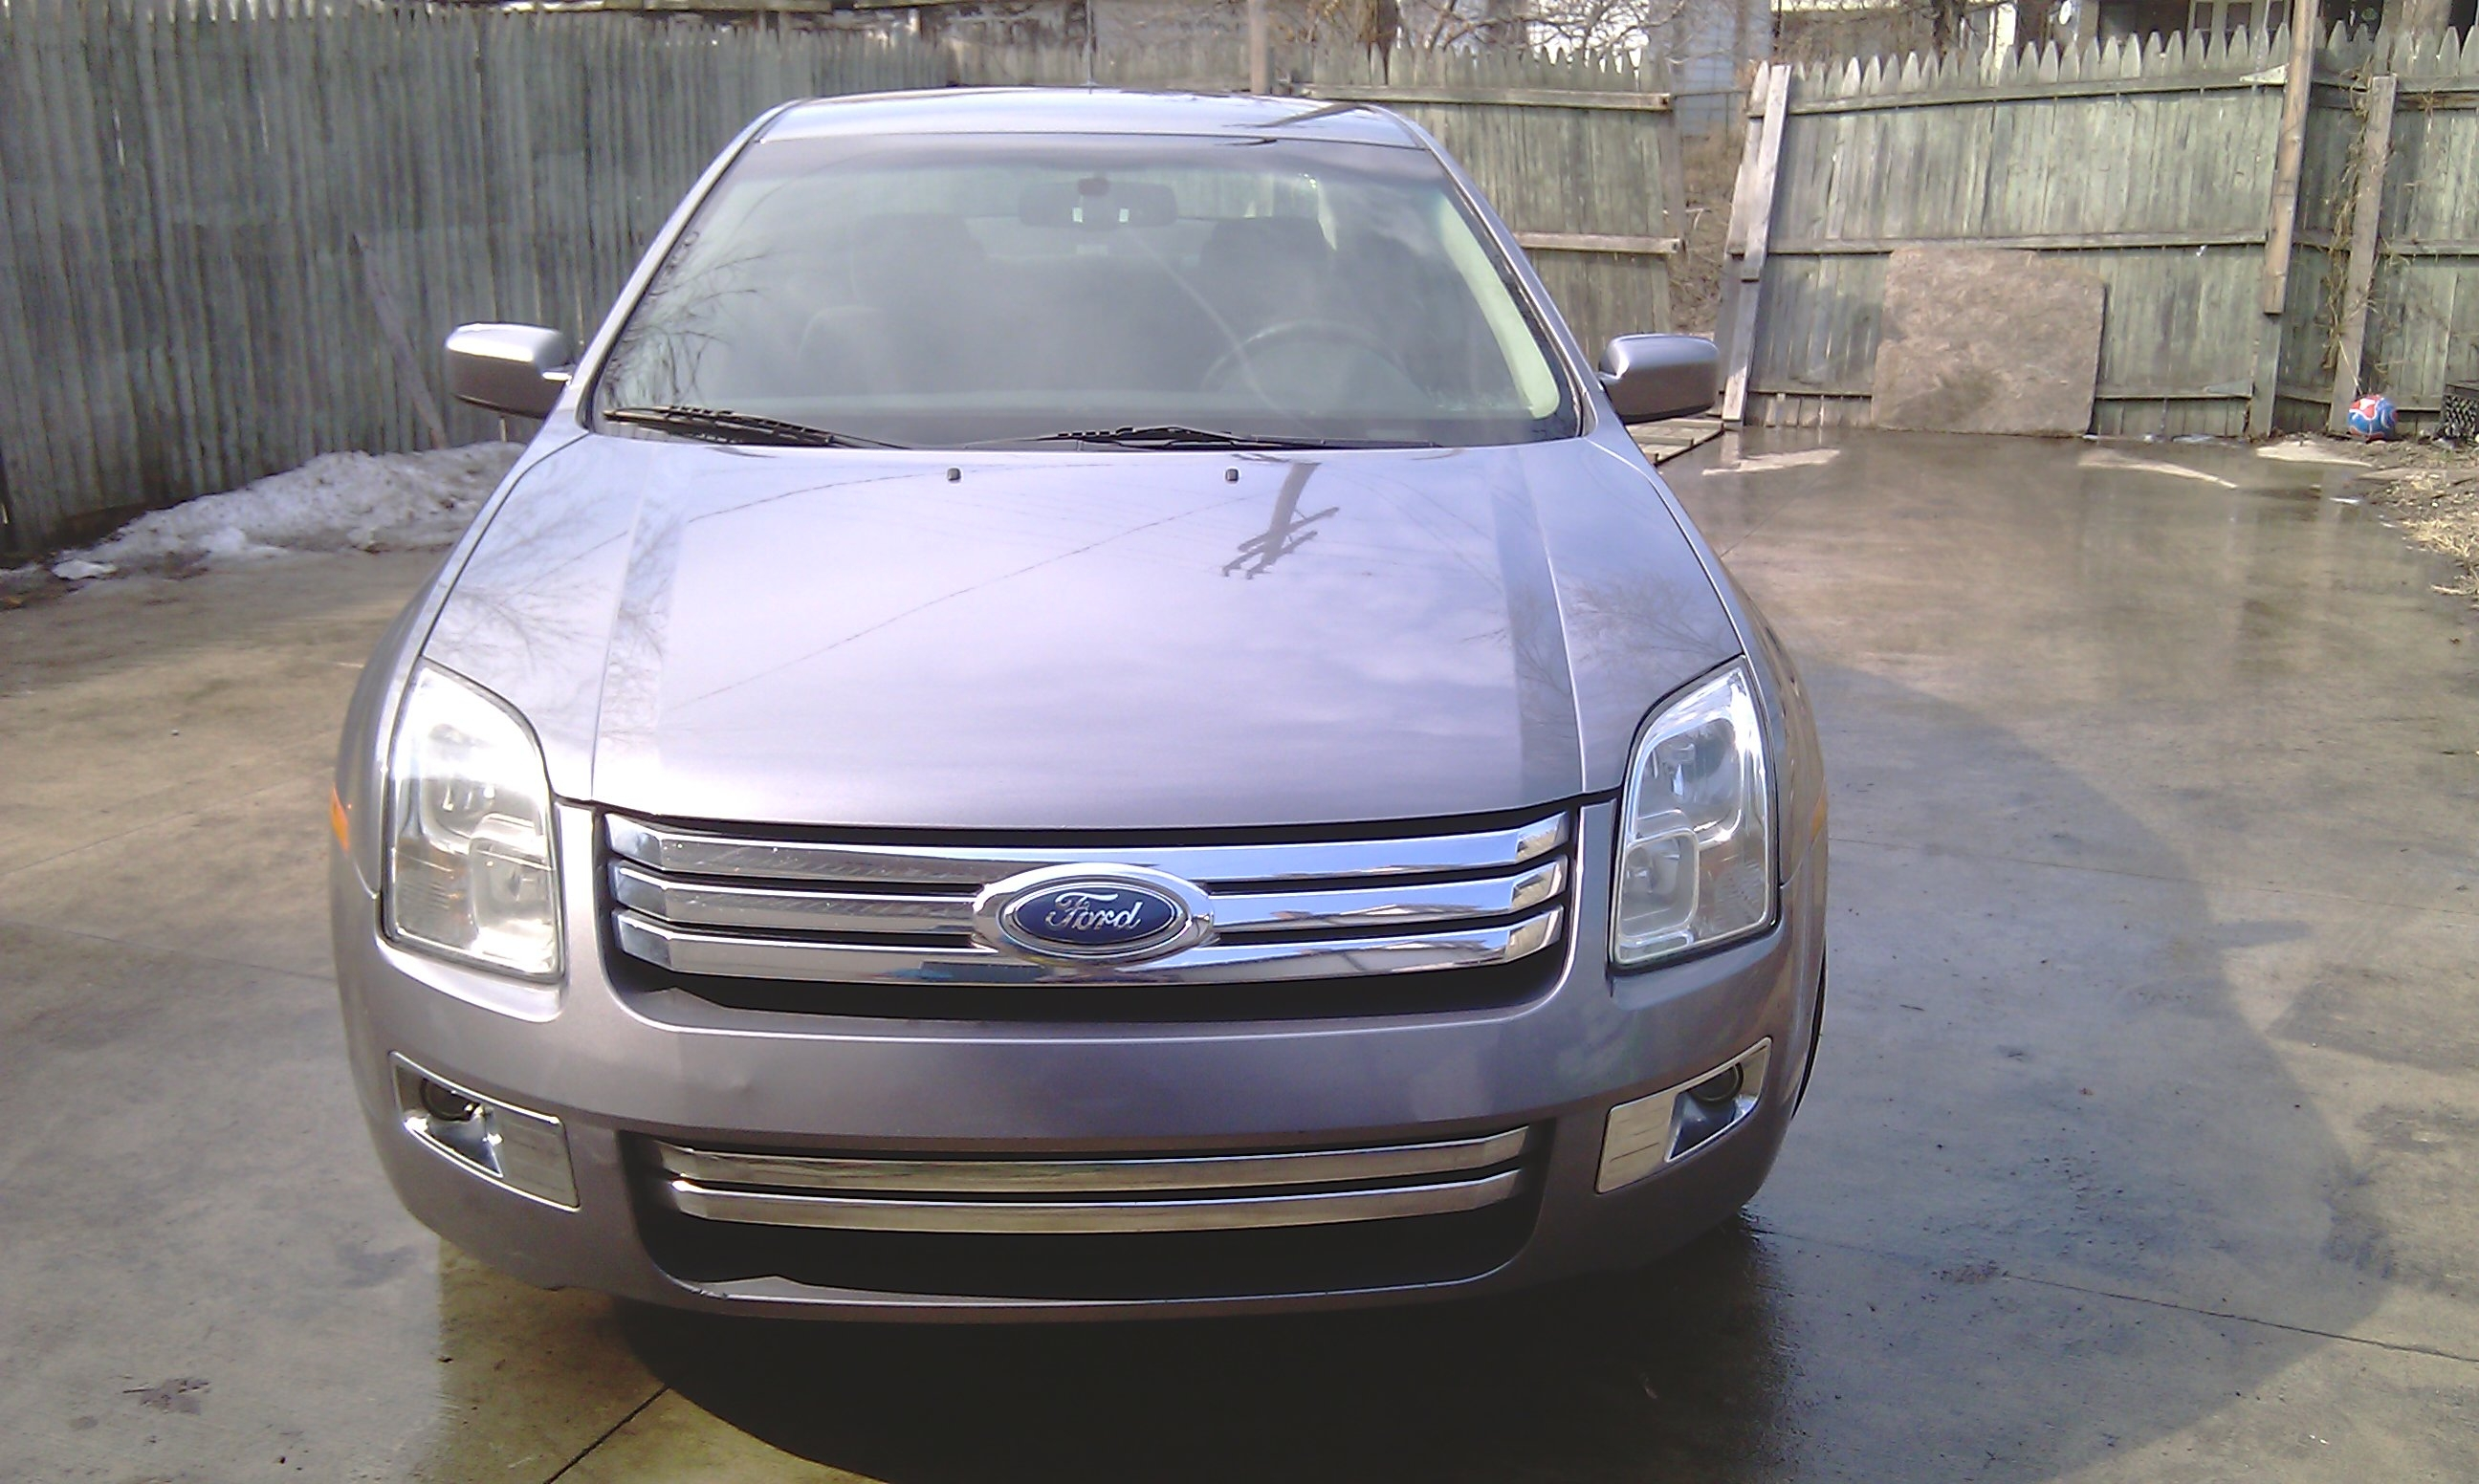 kinggato 2007 ford fusionsel sedan 4d specs photos modification info at cardomain. Black Bedroom Furniture Sets. Home Design Ideas